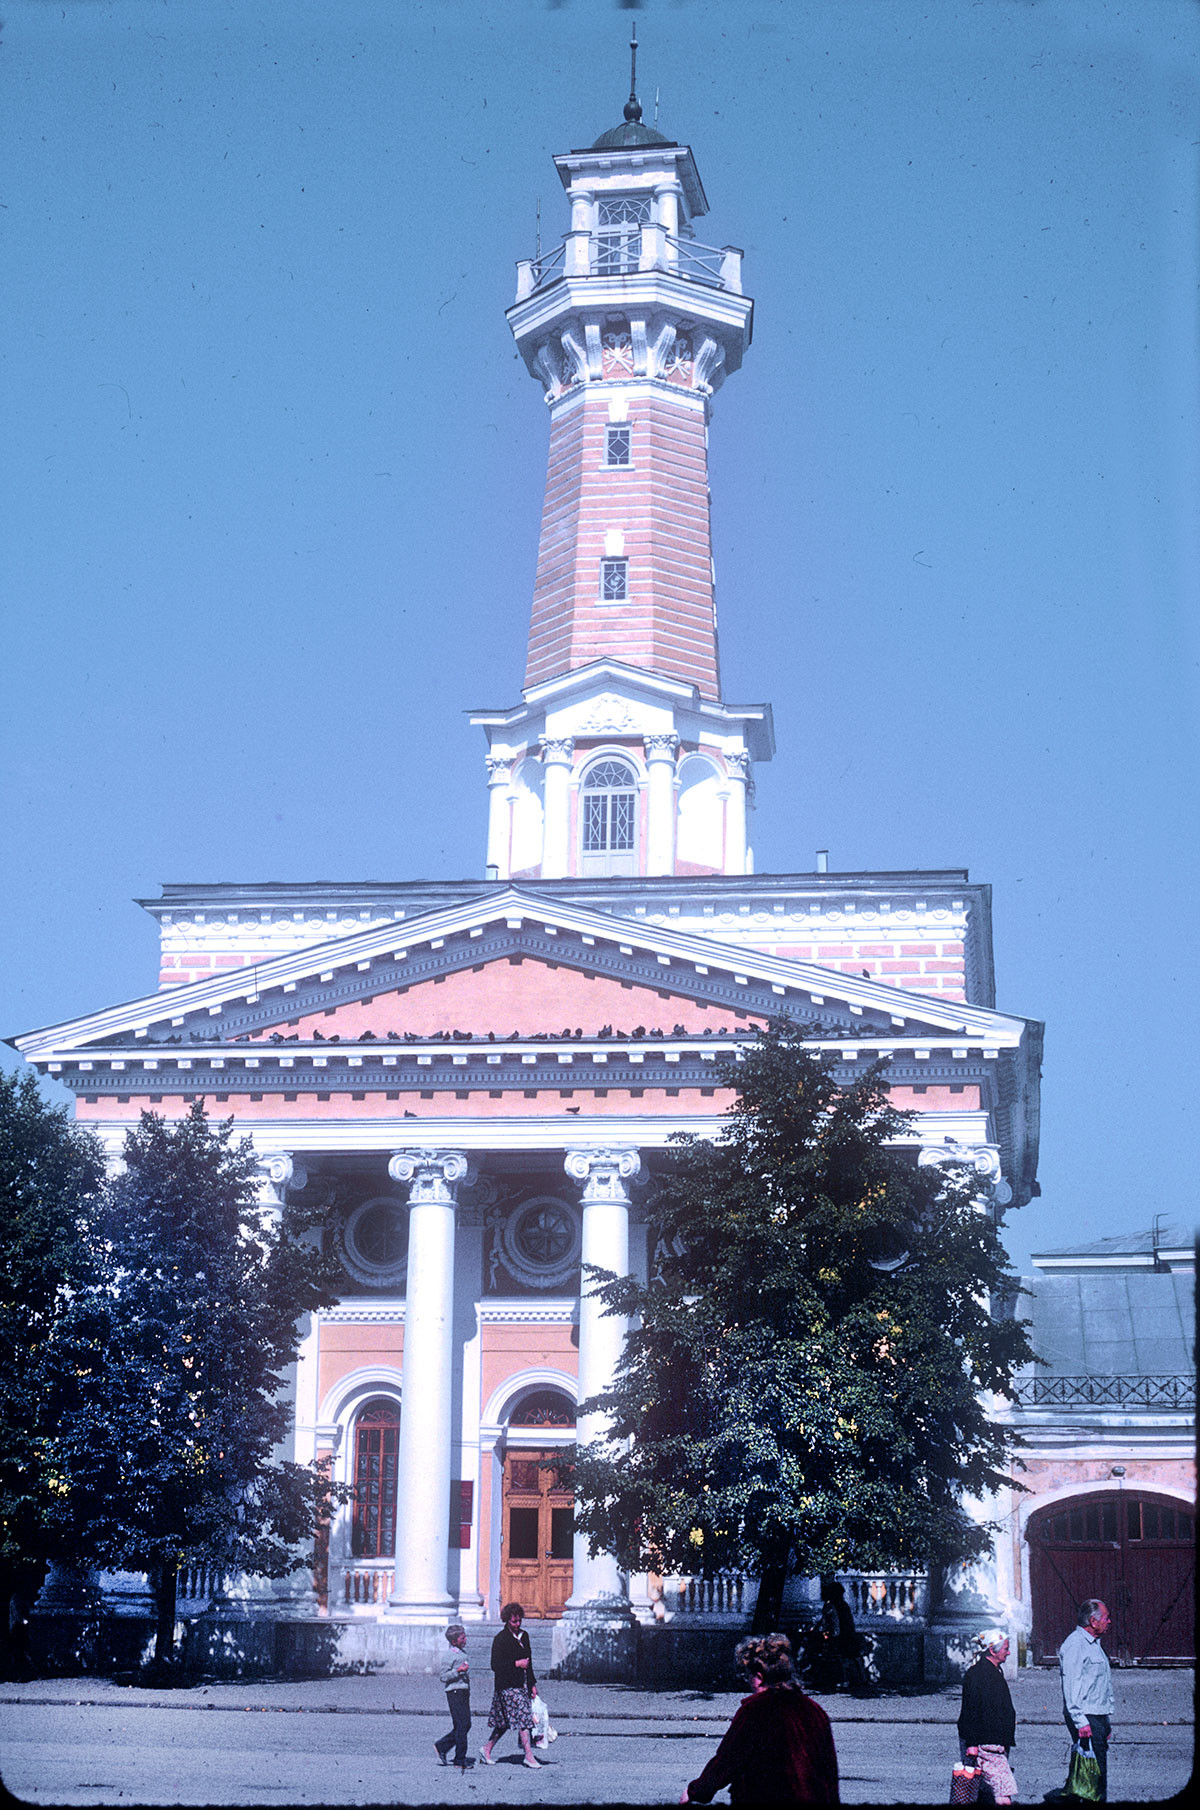 Fire Tower & Station, Susanin Square. August 22, 1988